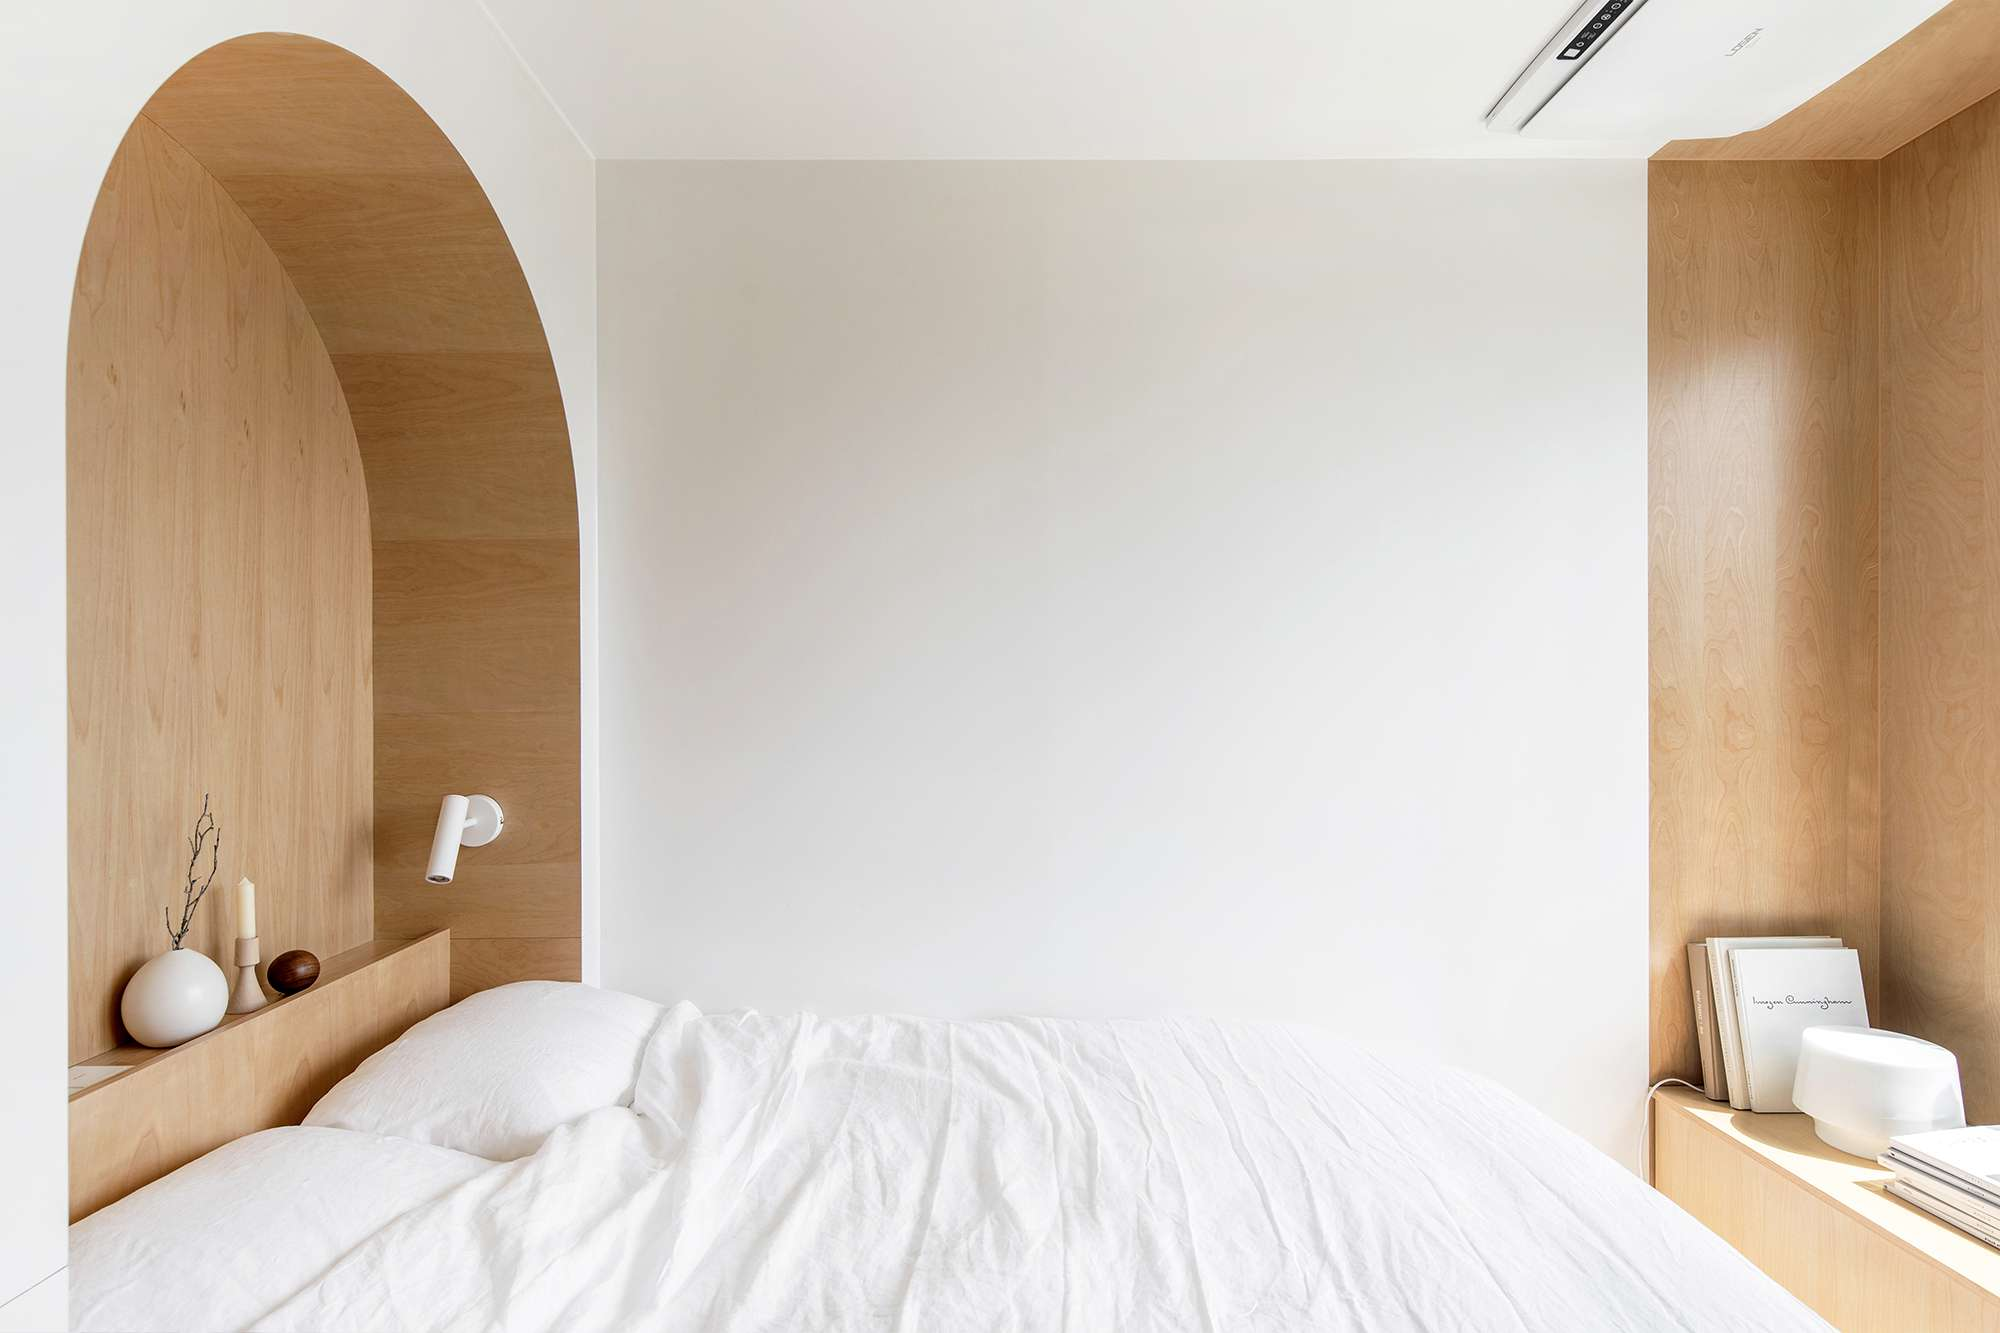 LIFE micro-apartments coliving Ian Lee arches